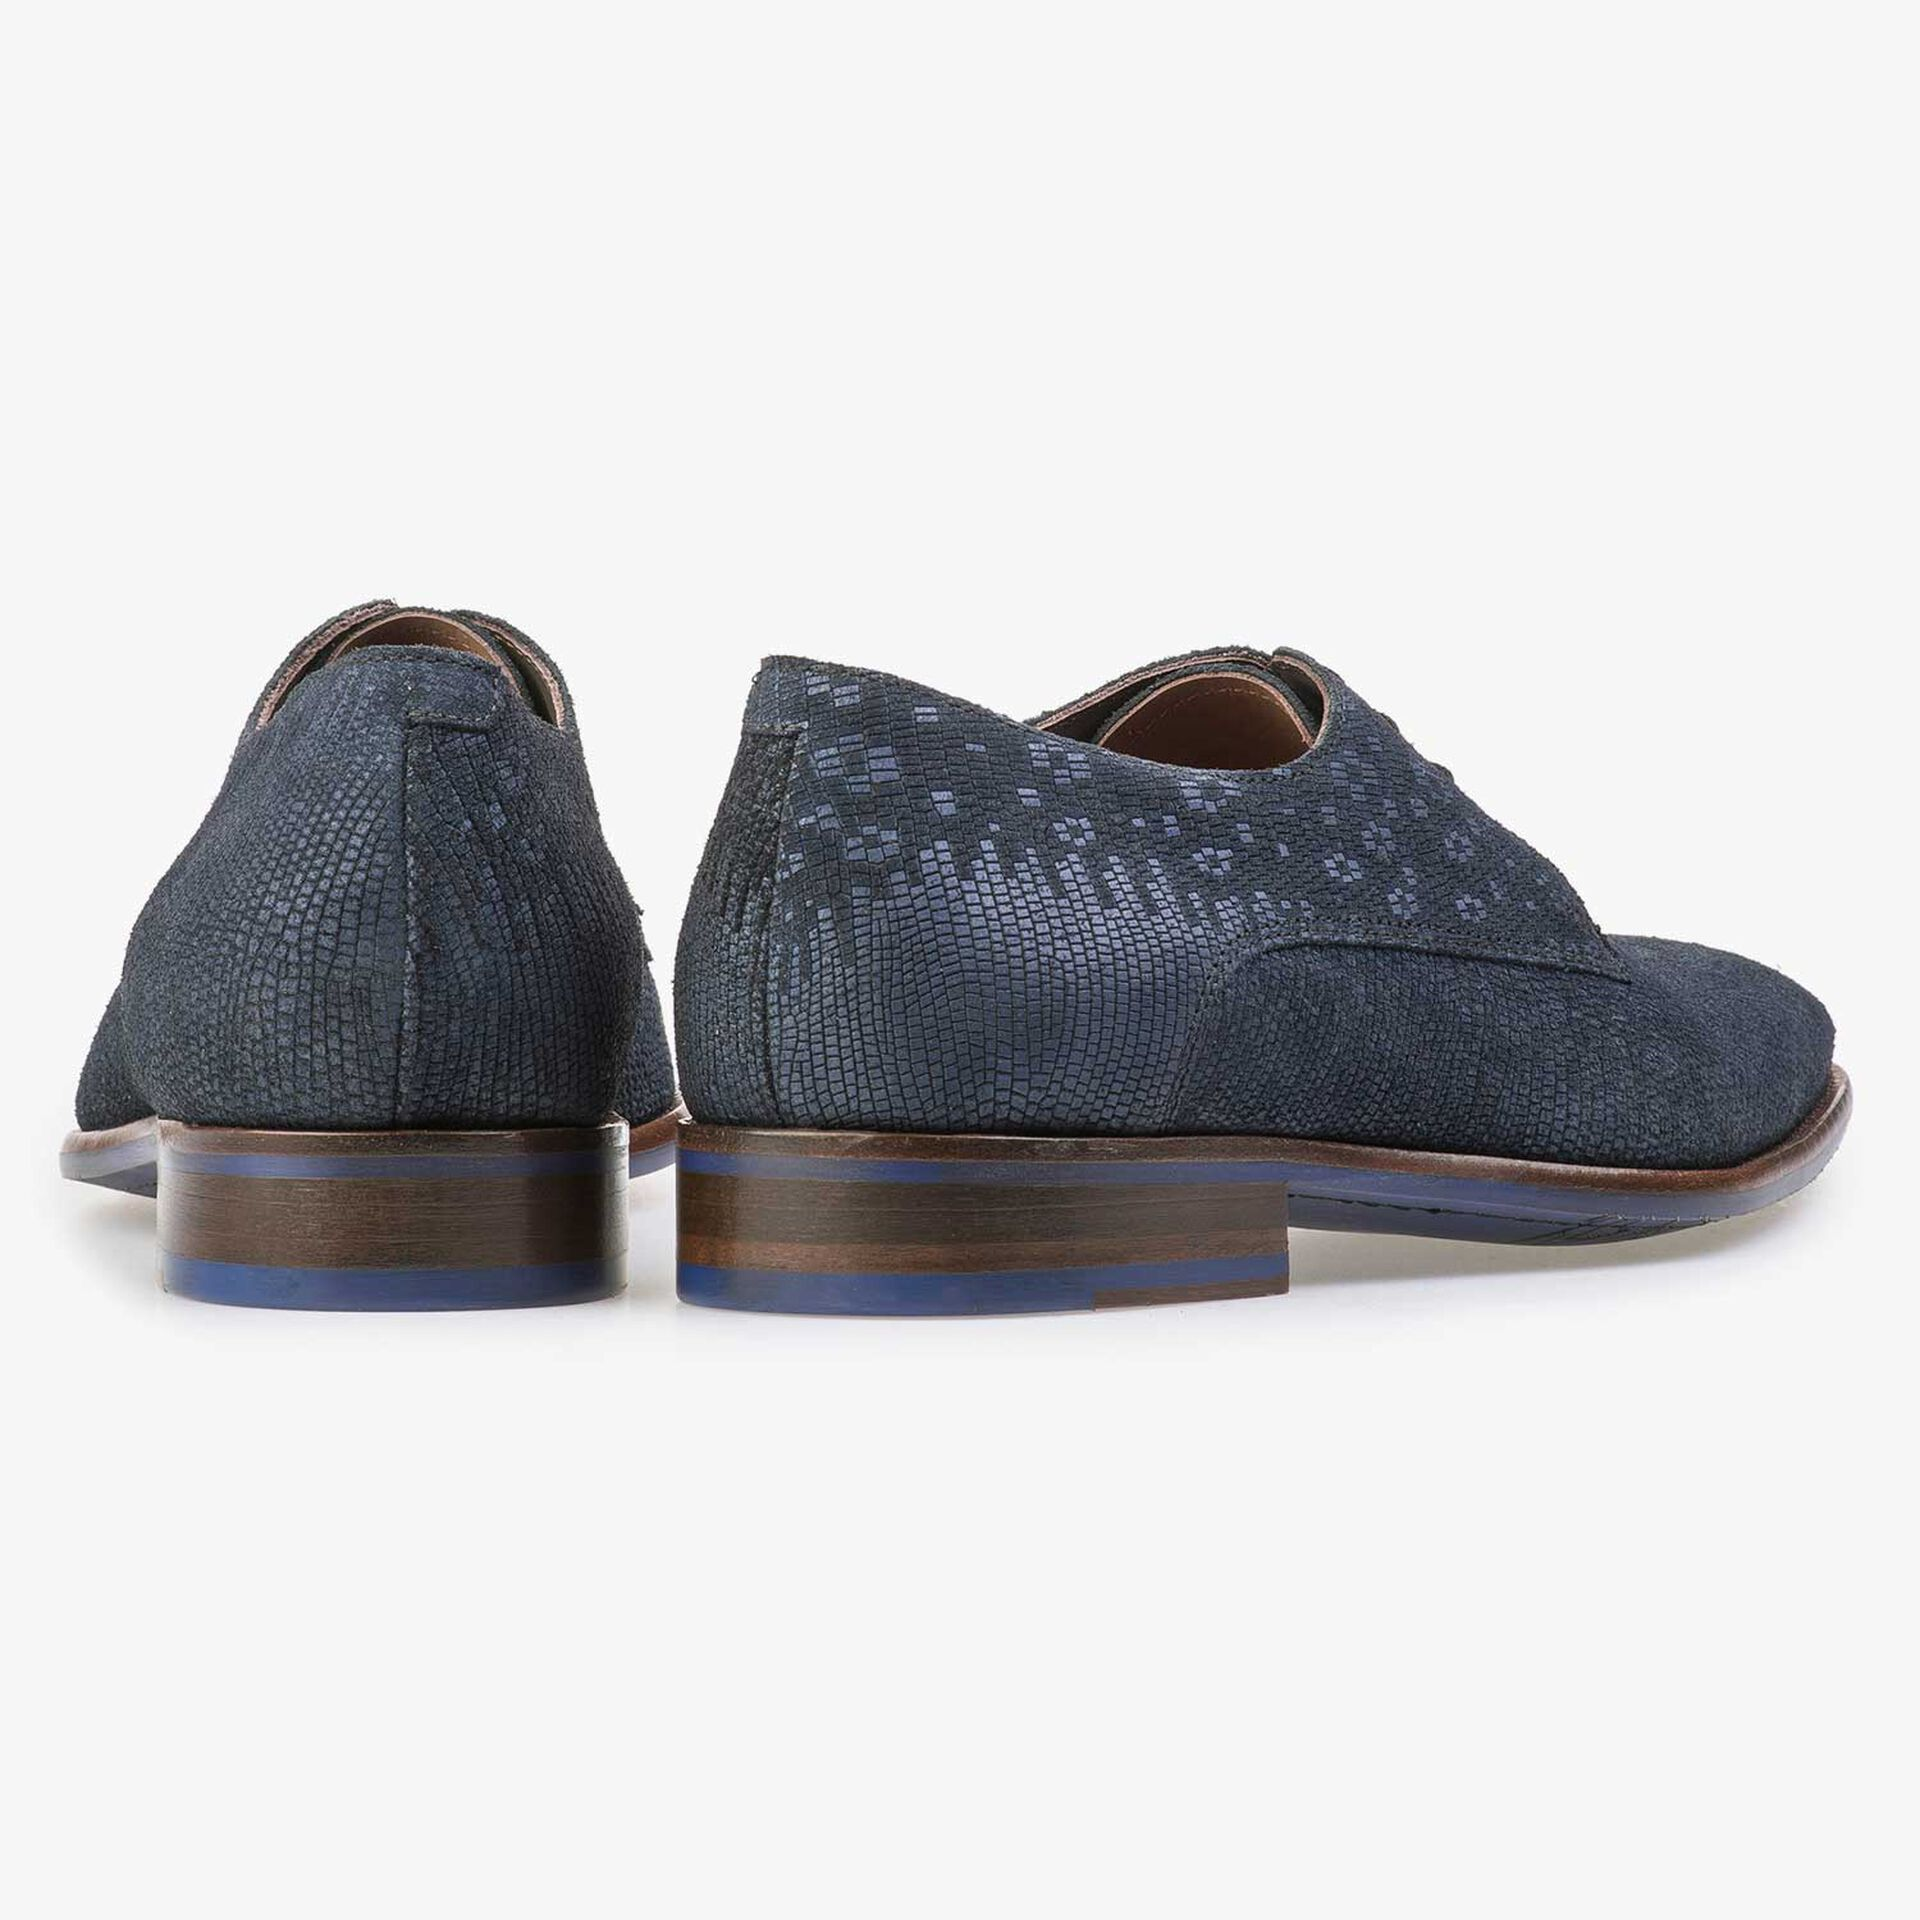 Blue lace shoe with structural pattern